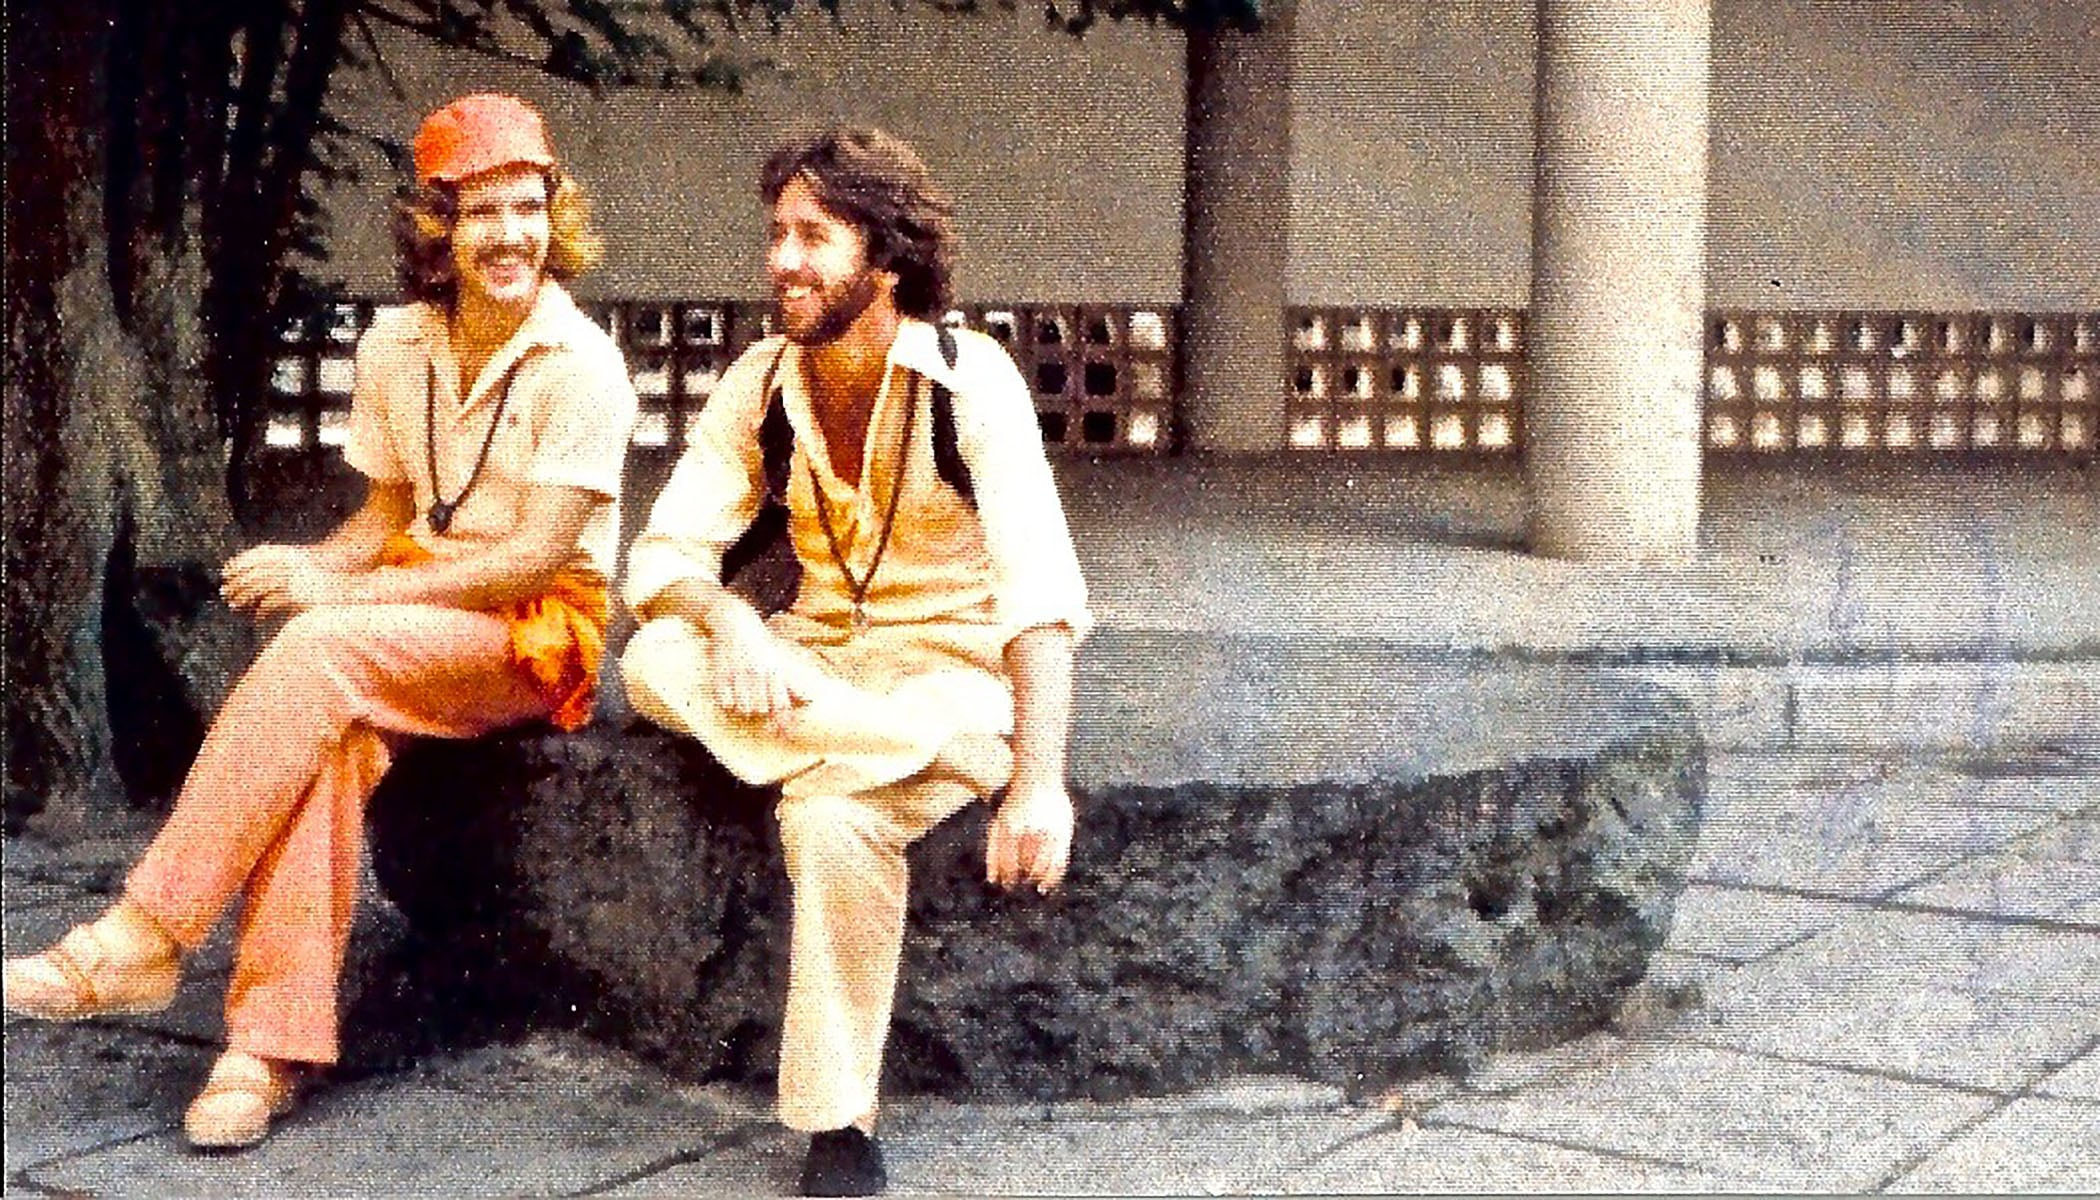 The author with Capt. Kurtski, intrepid pilot and provocateur (as Gorgeous Gloria will attest) - aka Sw. Nityanando – on a stop-over from a Japan-to-Bombay run on assignment to bring laughing buddhas back to Zen. Just another successful mission. Circa 1976.